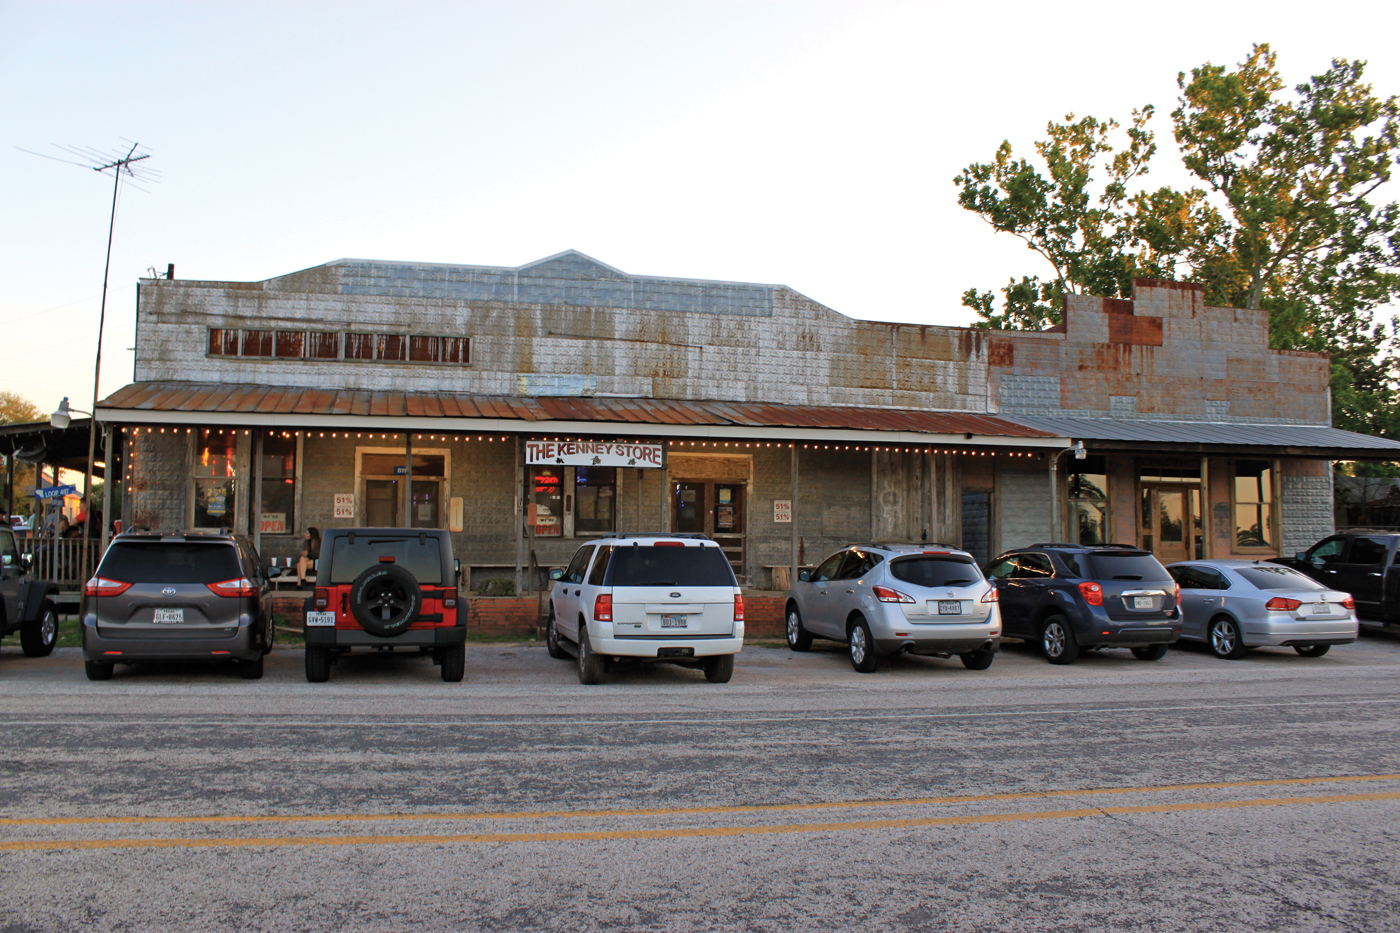 The Leakey Merchantile-A true Texas general store with beer, groceries, clothing, camping supplies, ammo and bait.